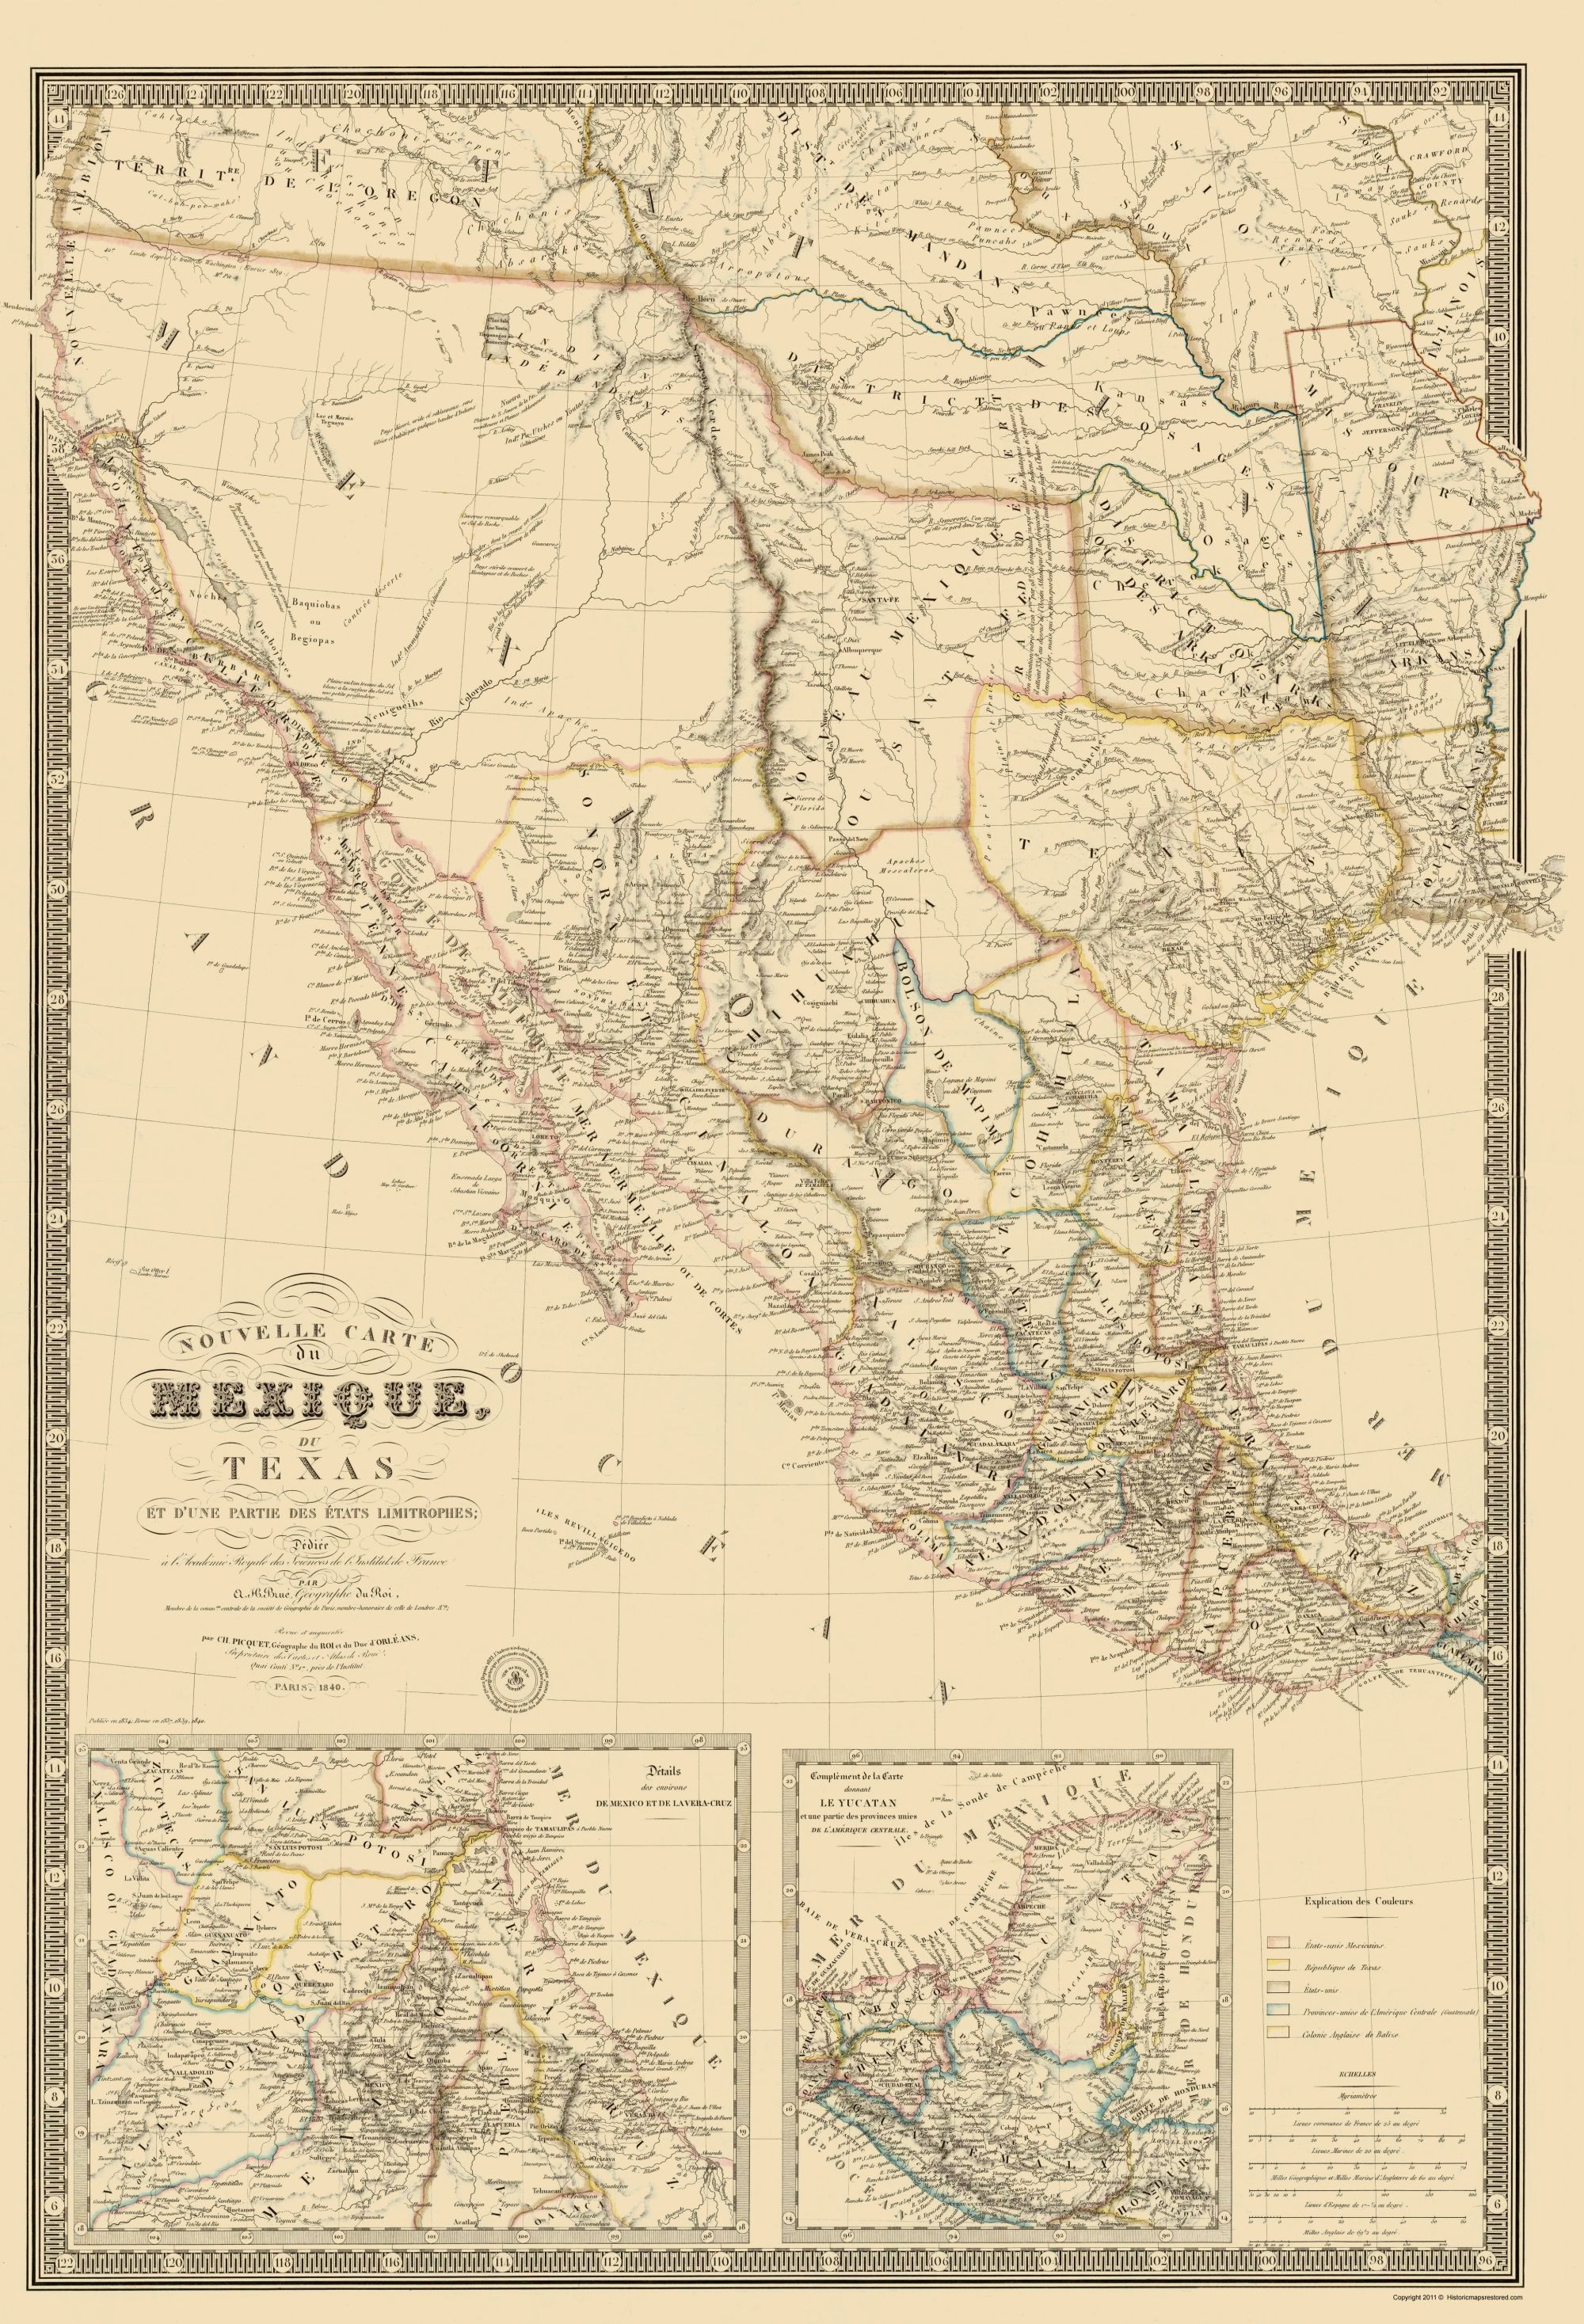 Old Map - Mexico, Southwest United States 1840 | Home - Shopping - Old Texas Maps Prints